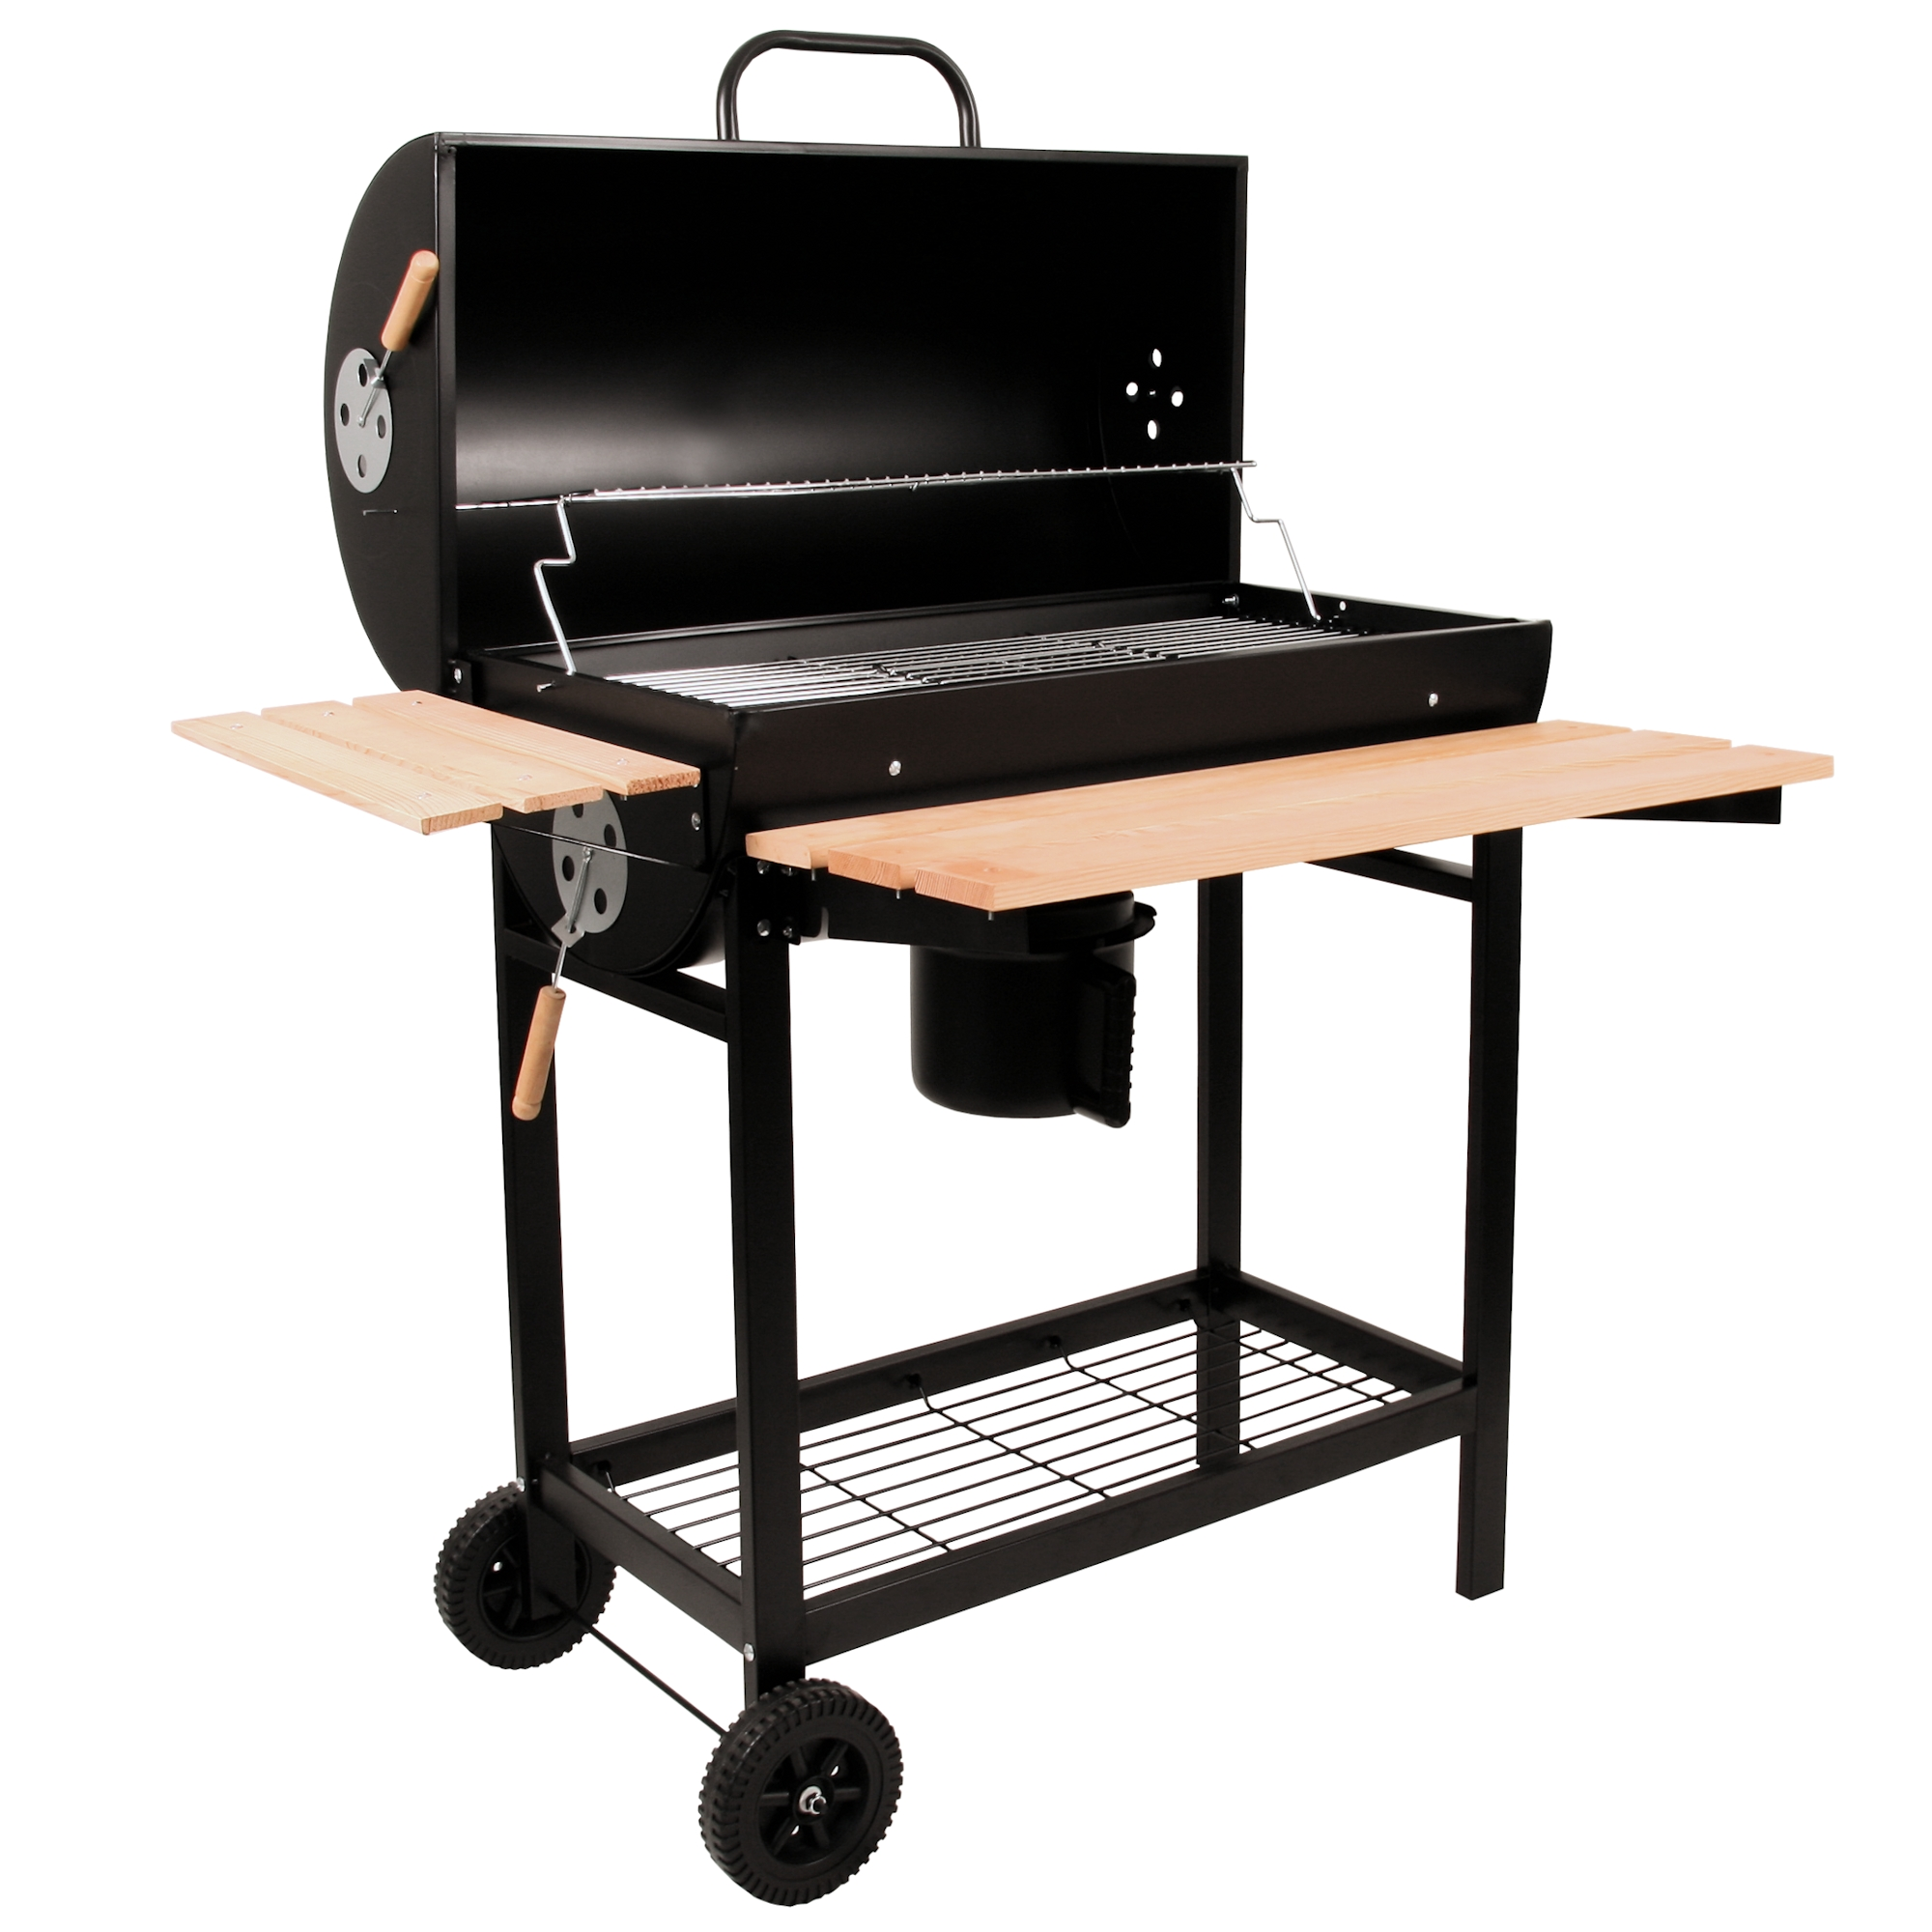 bbq toro holzkohle grillwagen smoker holzkohlegrill bbq der onlineshop f r grills. Black Bedroom Furniture Sets. Home Design Ideas